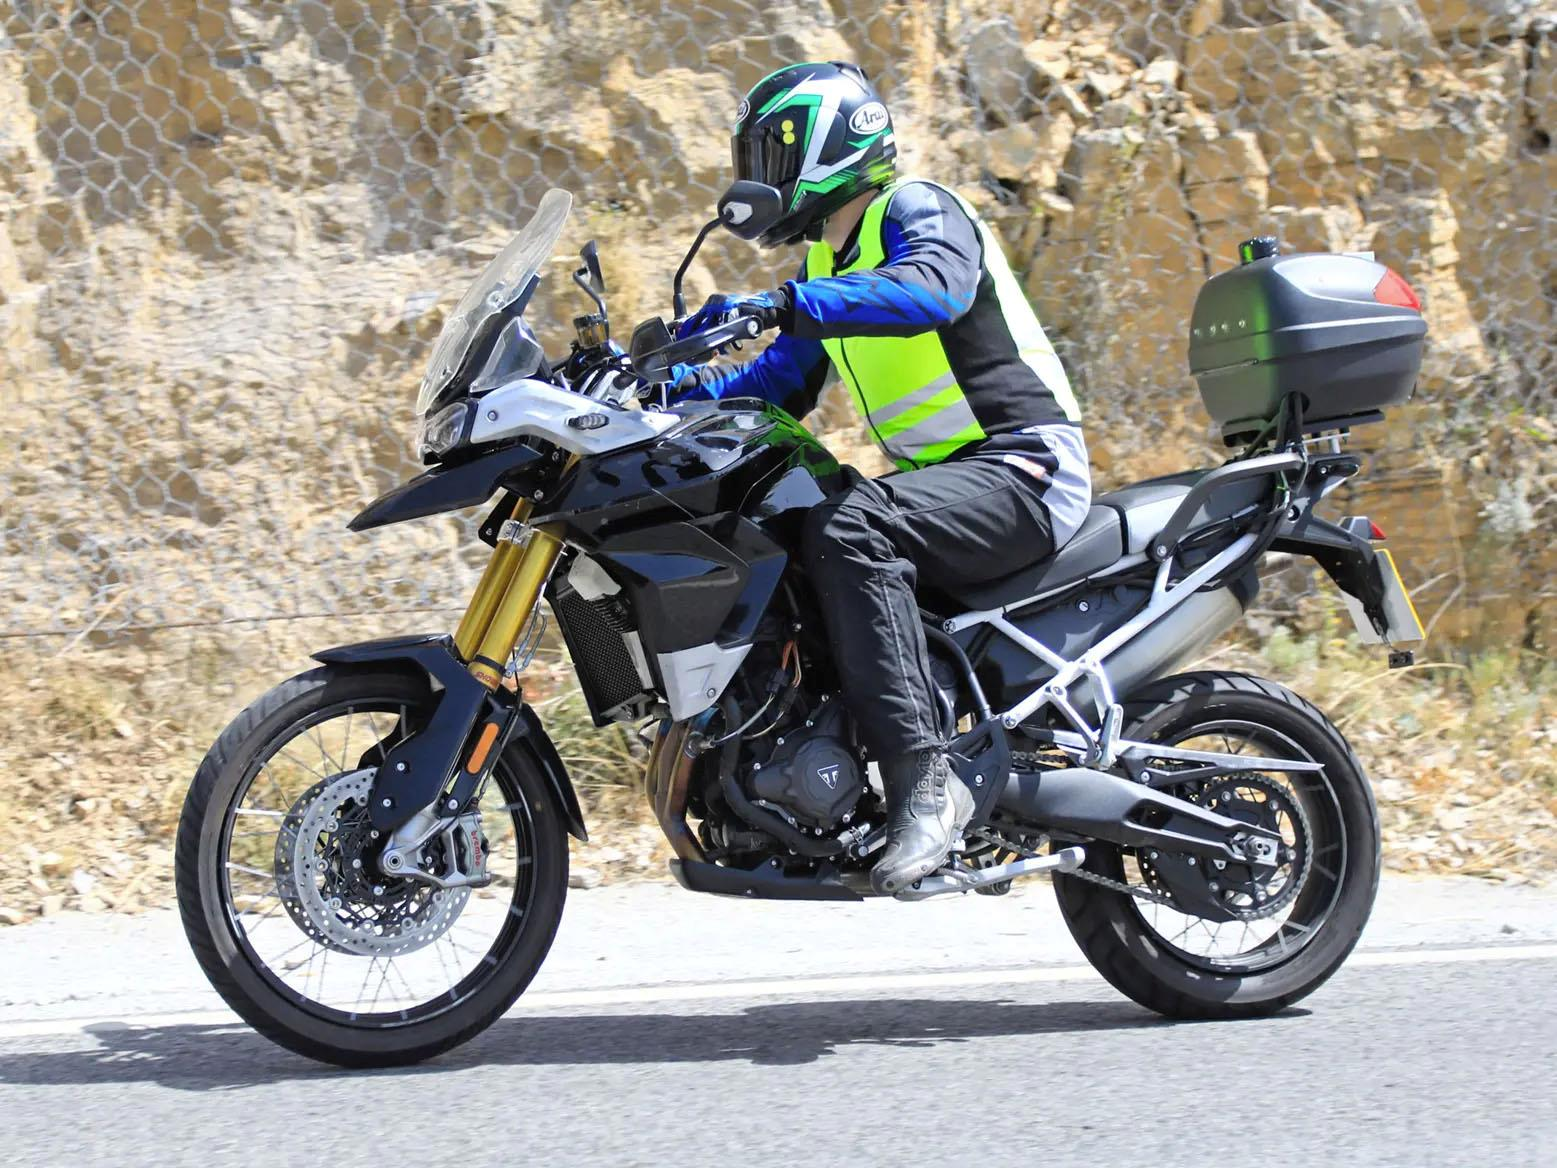 Triumph Tiger 900 spy shots